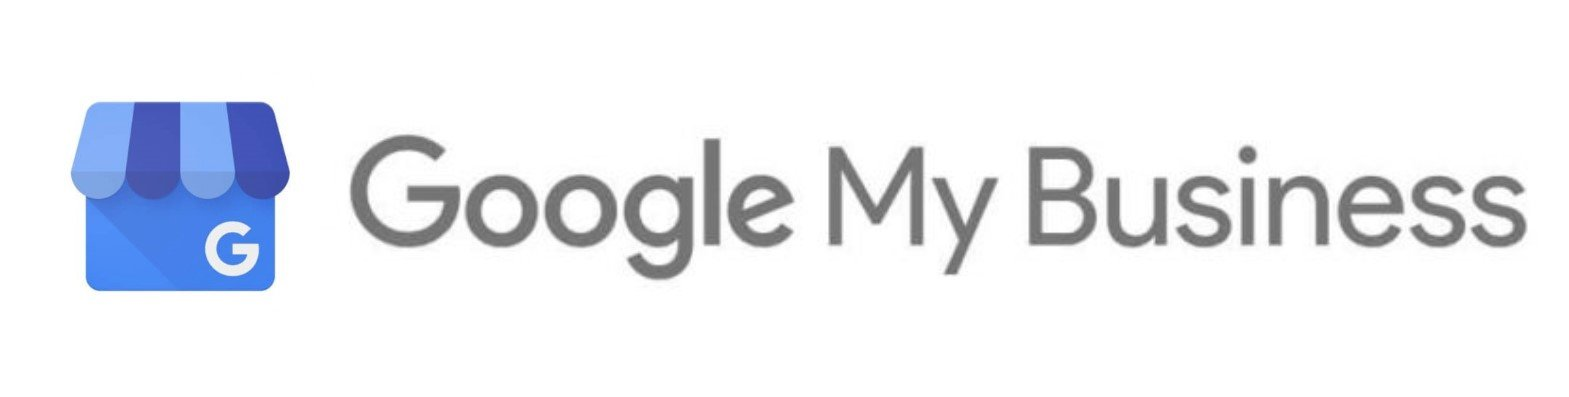 Google My Business Logo Complete